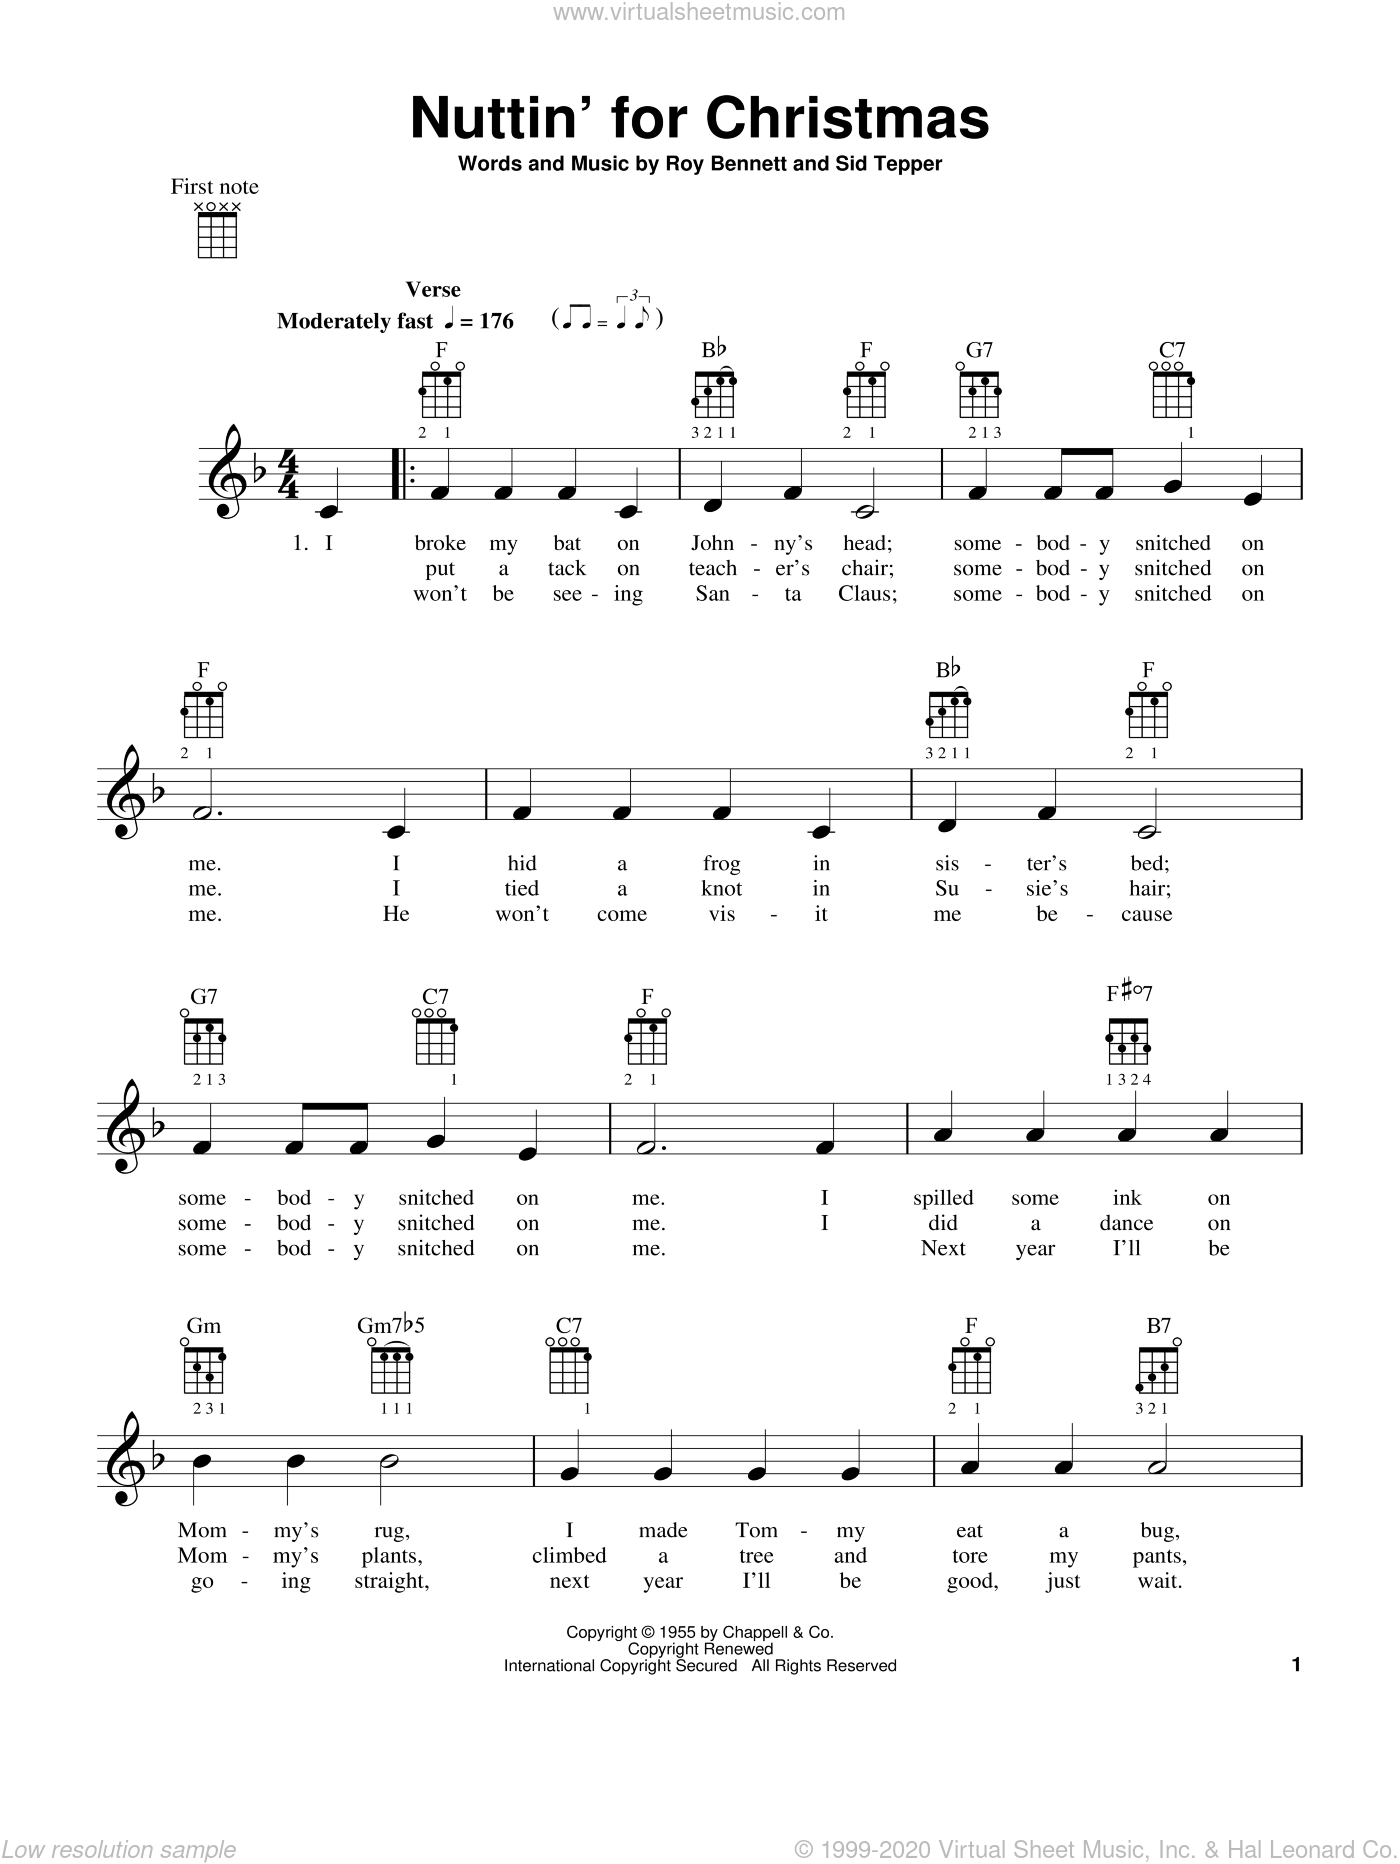 Nuttin' For Christmas sheet music for ukulele by Roy Bennett and Sid Tepper, intermediate skill level